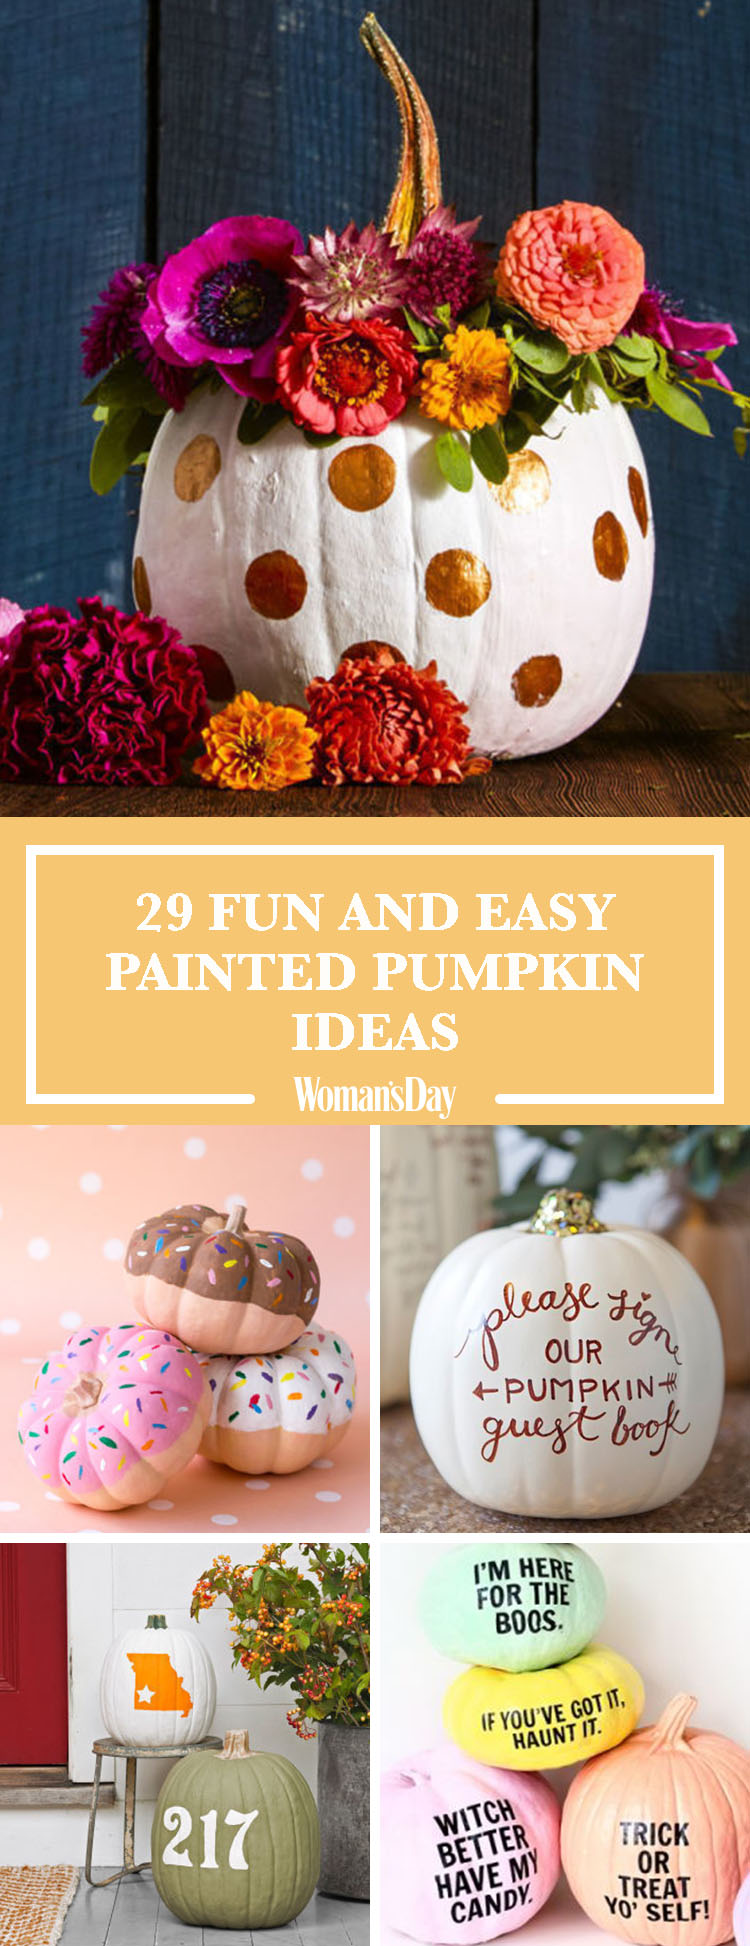 35 halloween pumpkin painting ideas - no carve pumpkin decorating